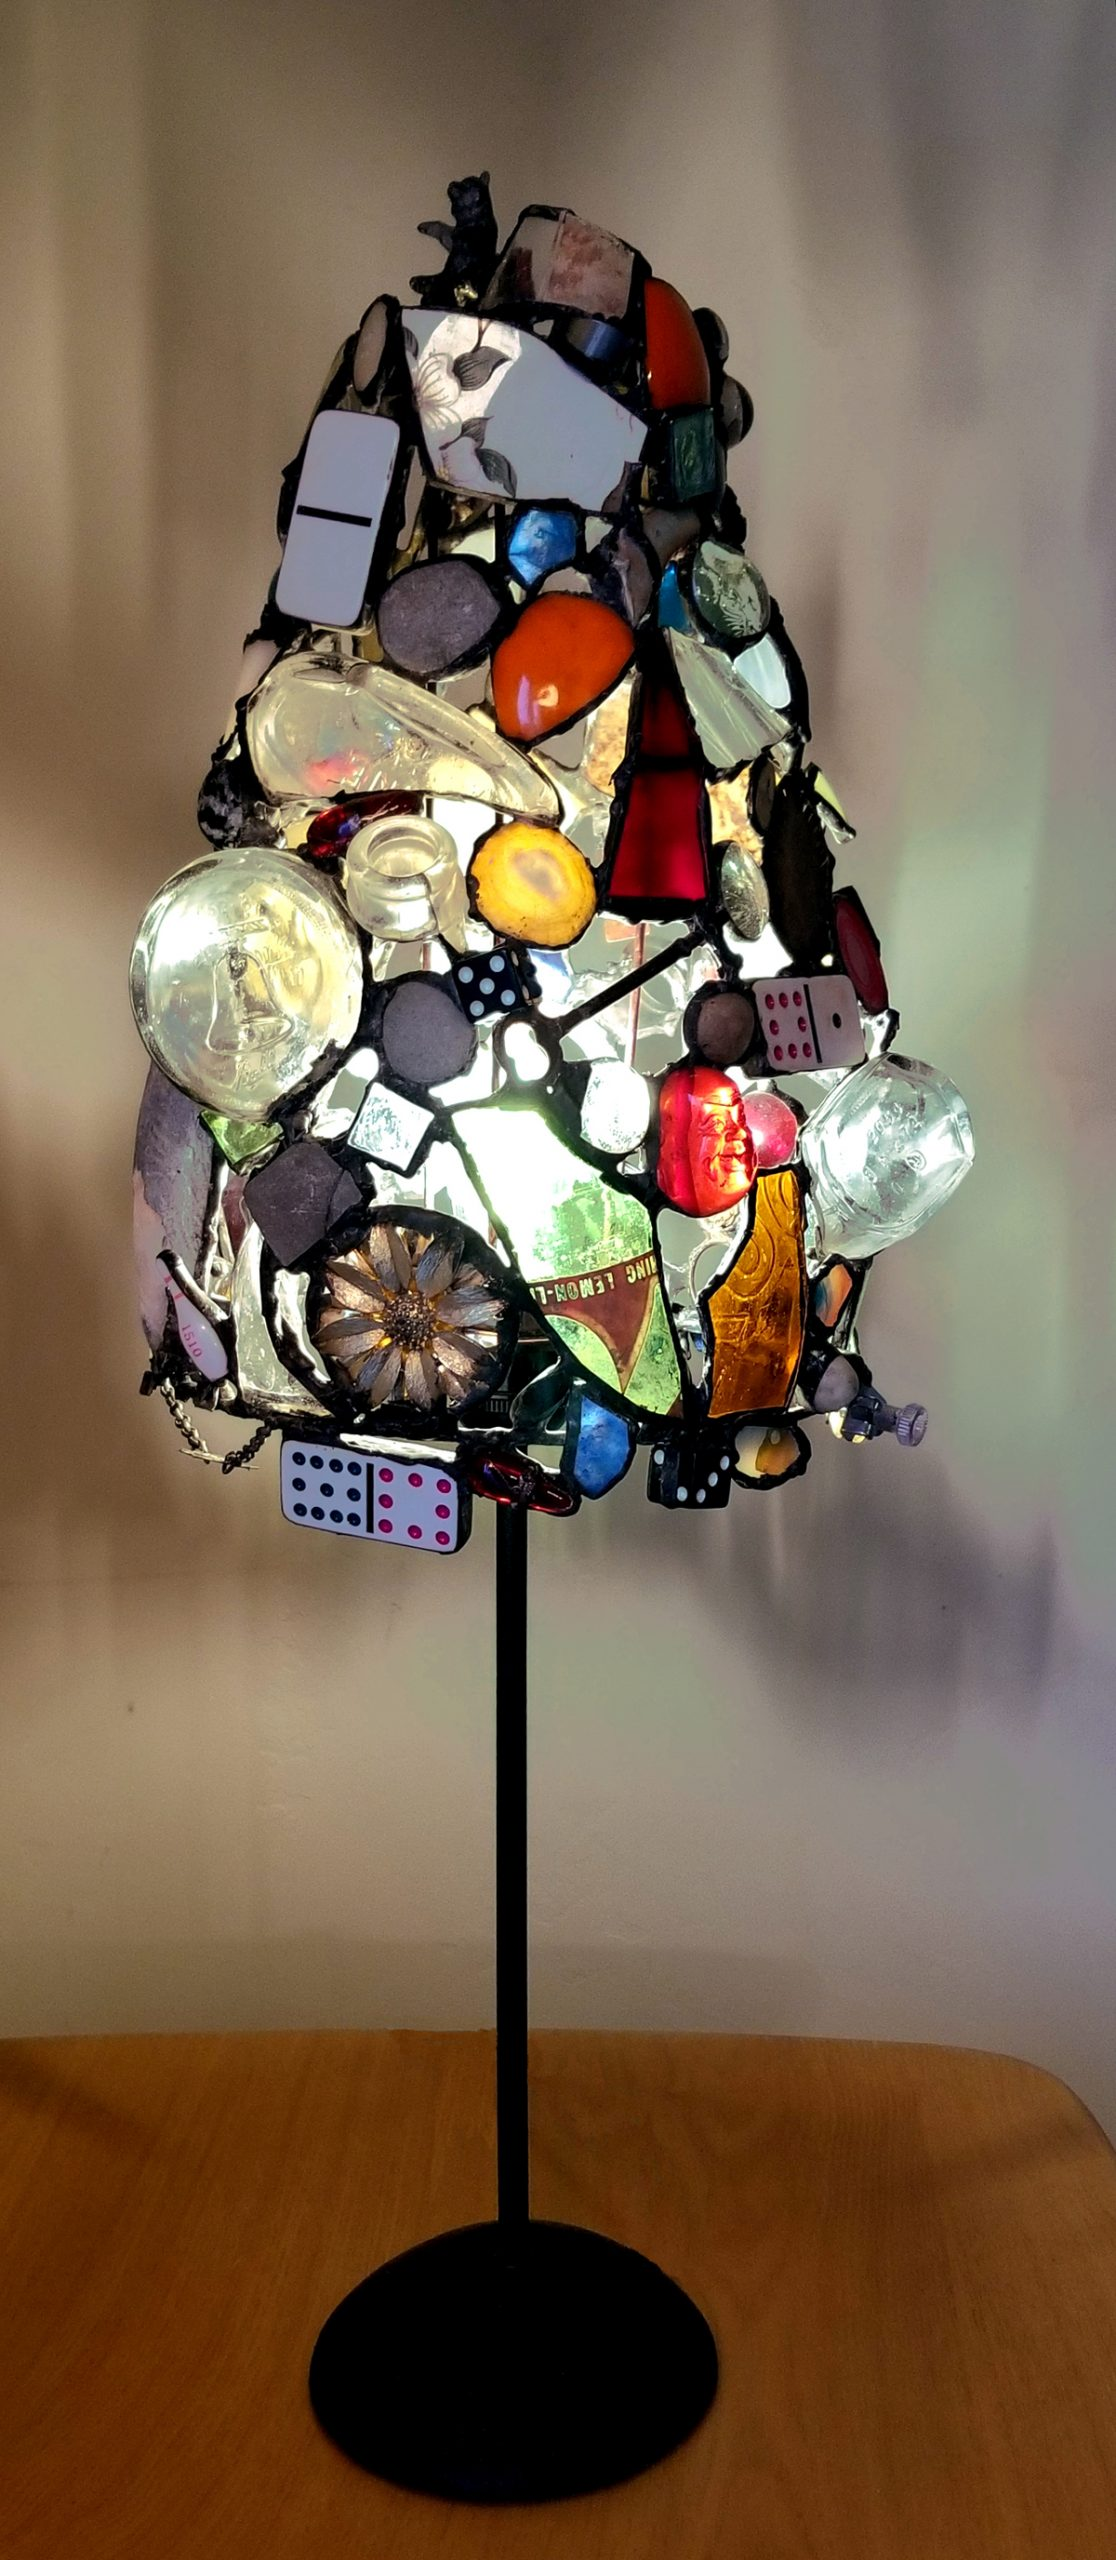 Melissa-Resch-Table-Lamp-Thin-Metal-found-objects-